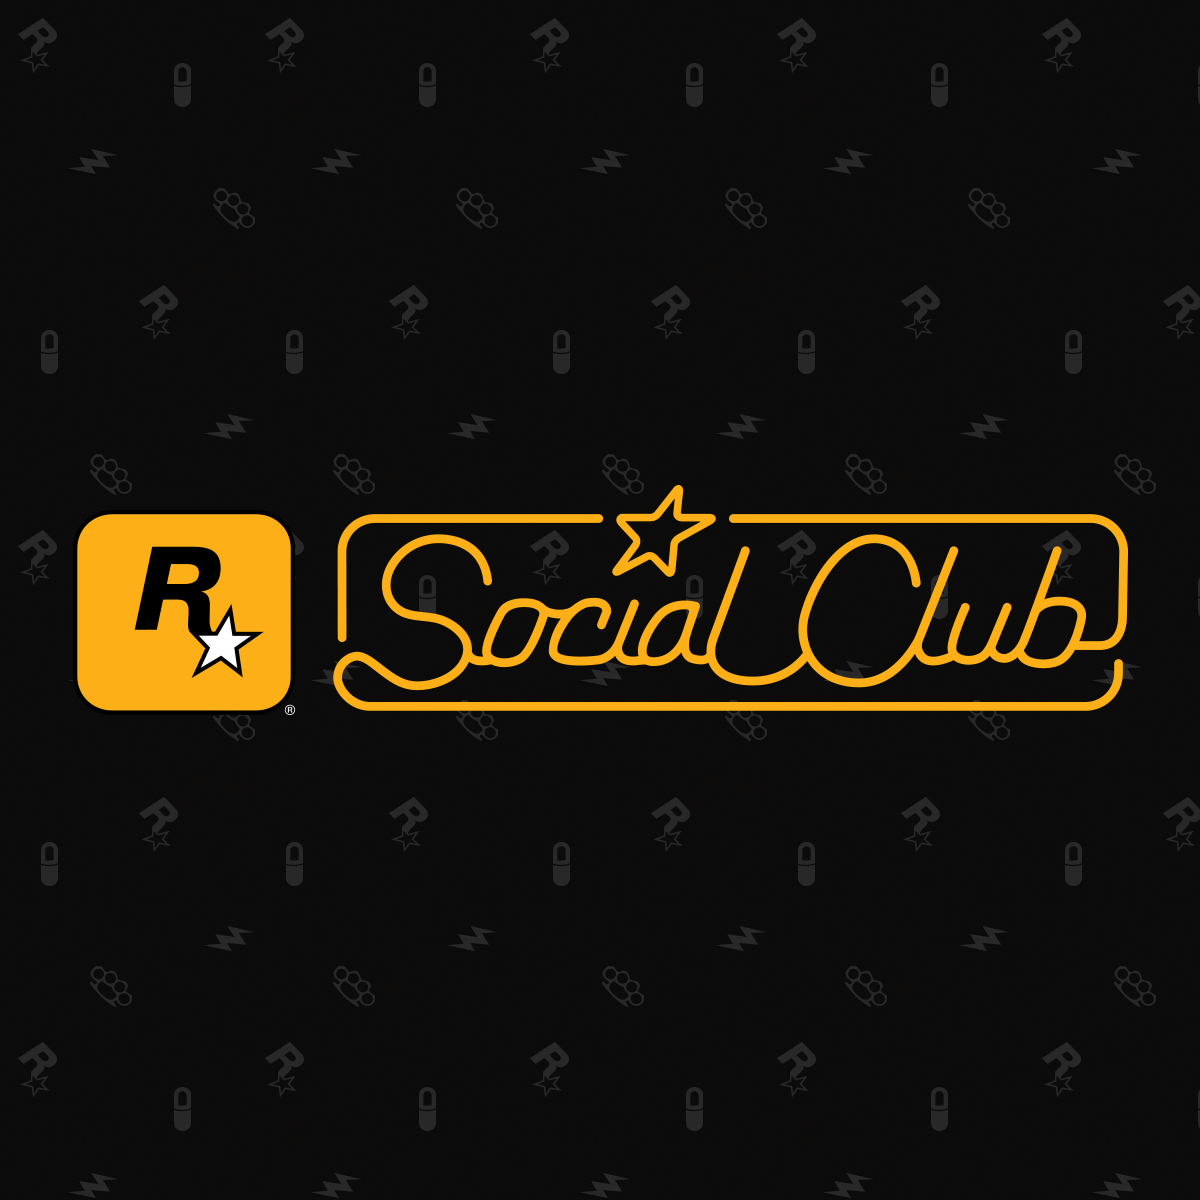 how to change social club name